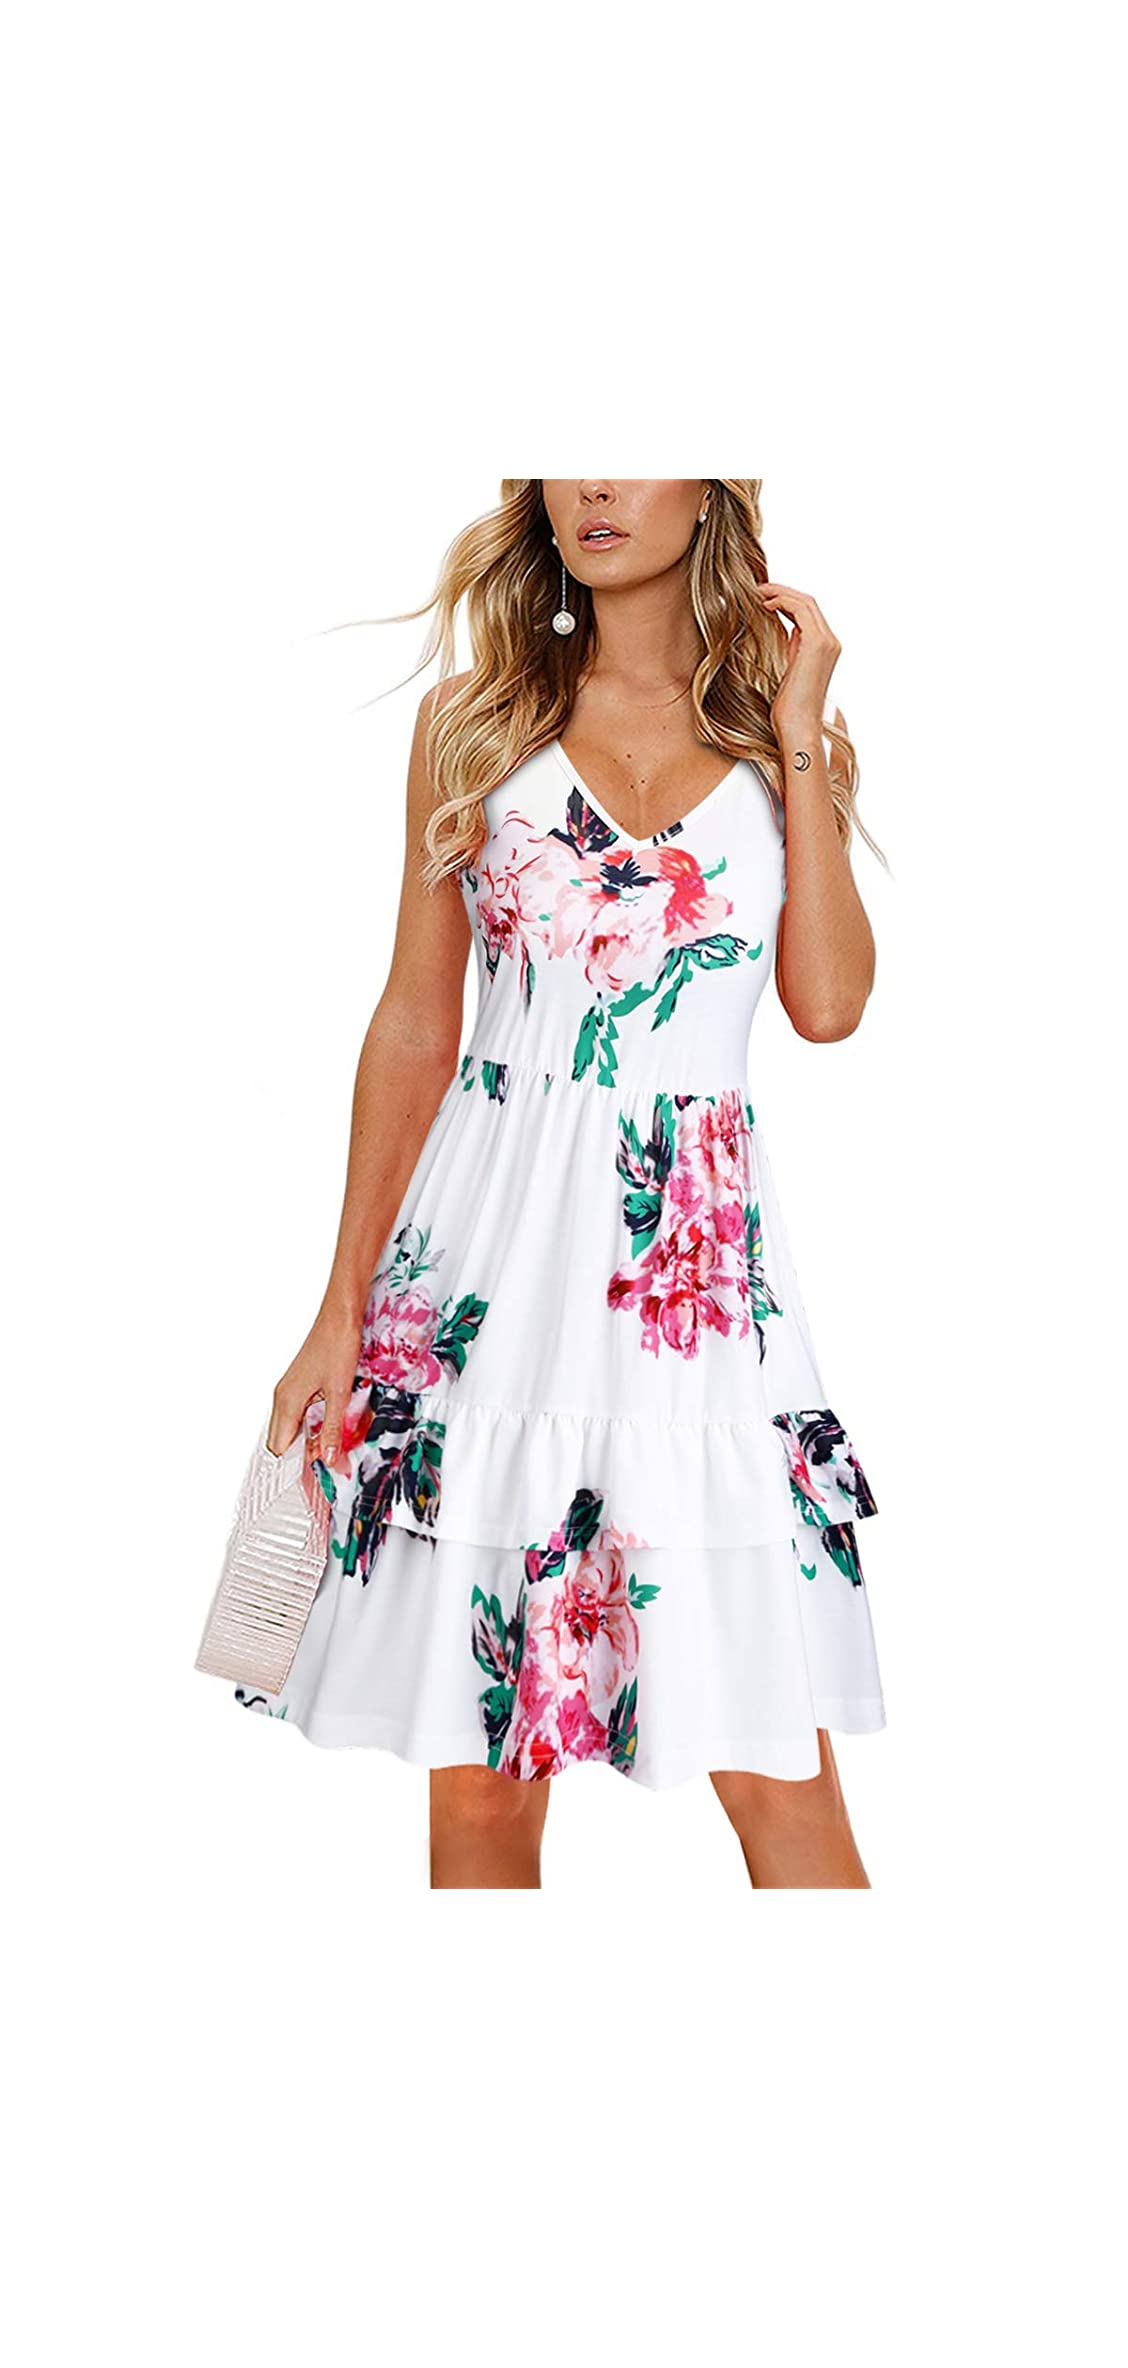 Women's V Neck Floral Print Sleeveless Summer Dress Ruffle